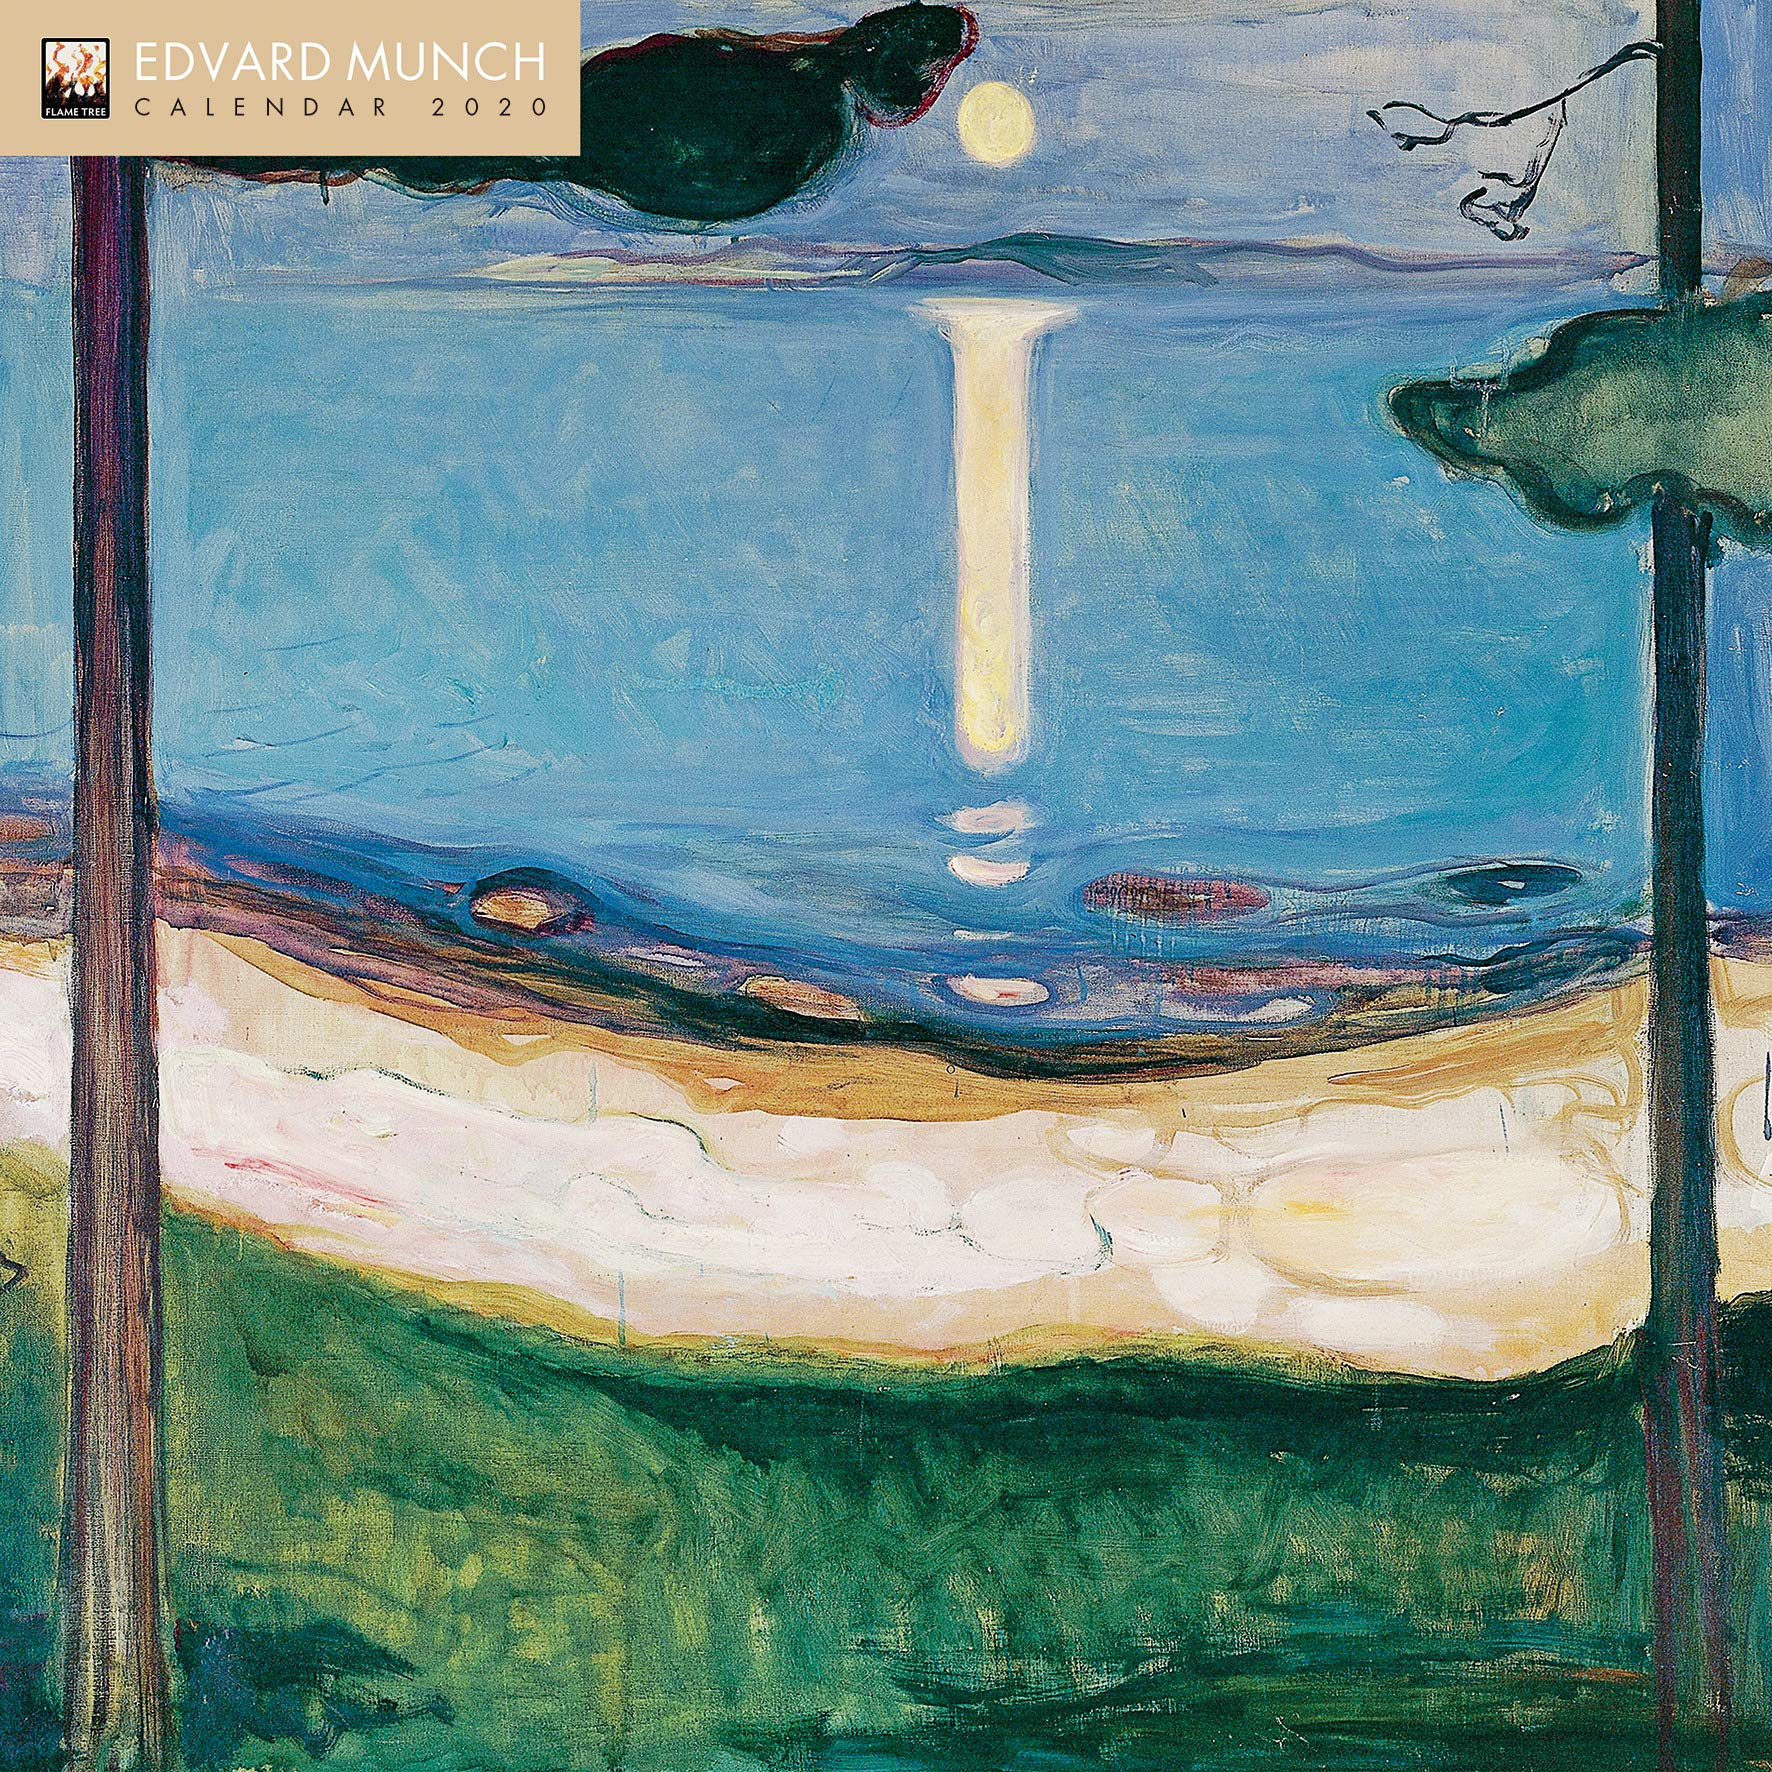 Uml Fall 2020 Calendar Amazon.com: Edvard Munch Wall Calendar 2020 (Art Calendar